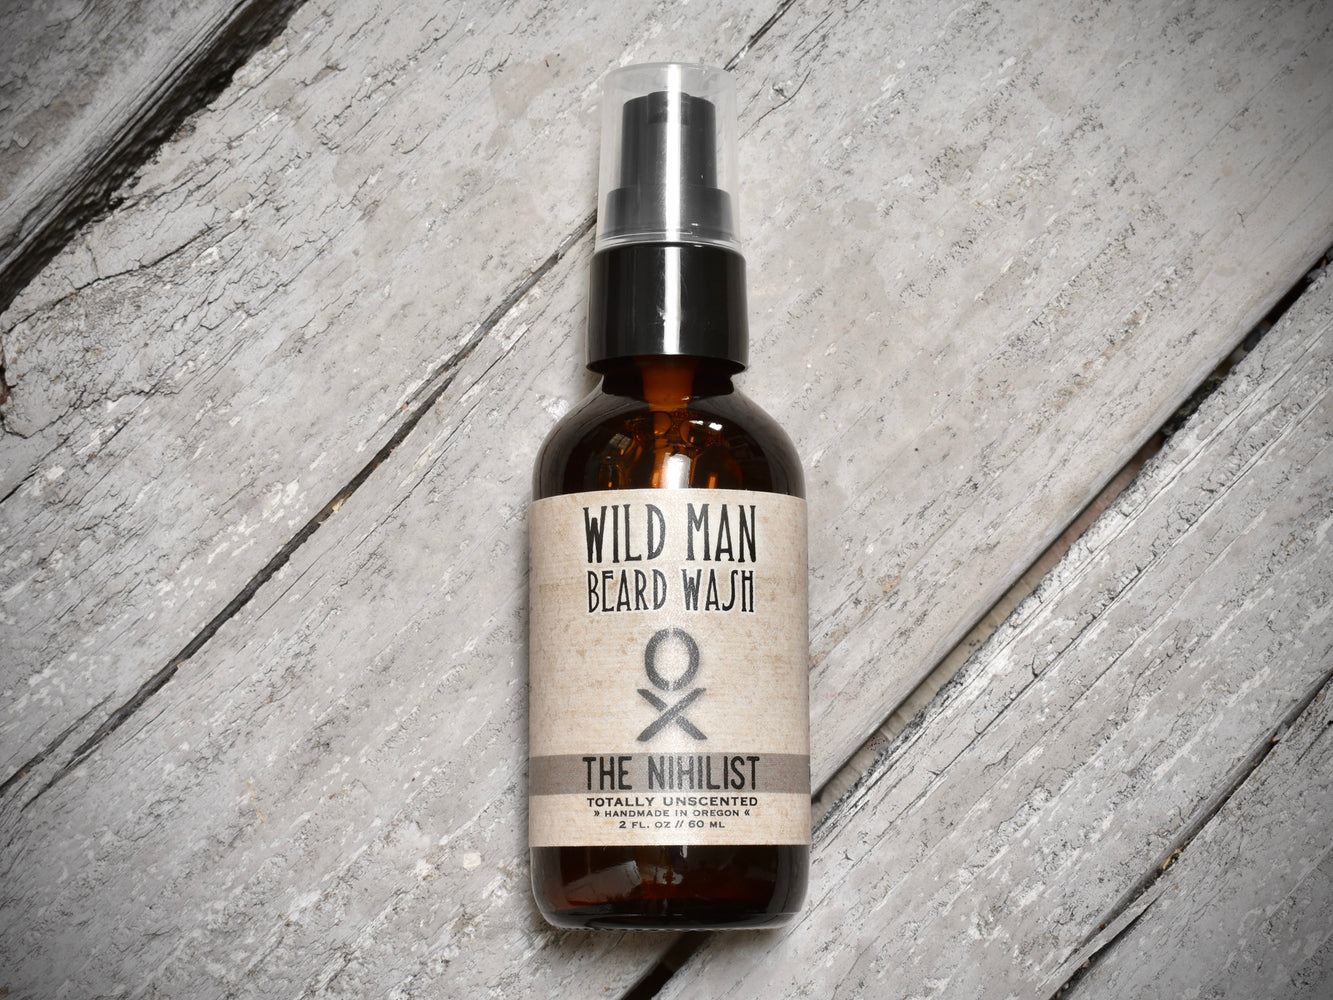 Wild Man Beard Wash - The Nihilist